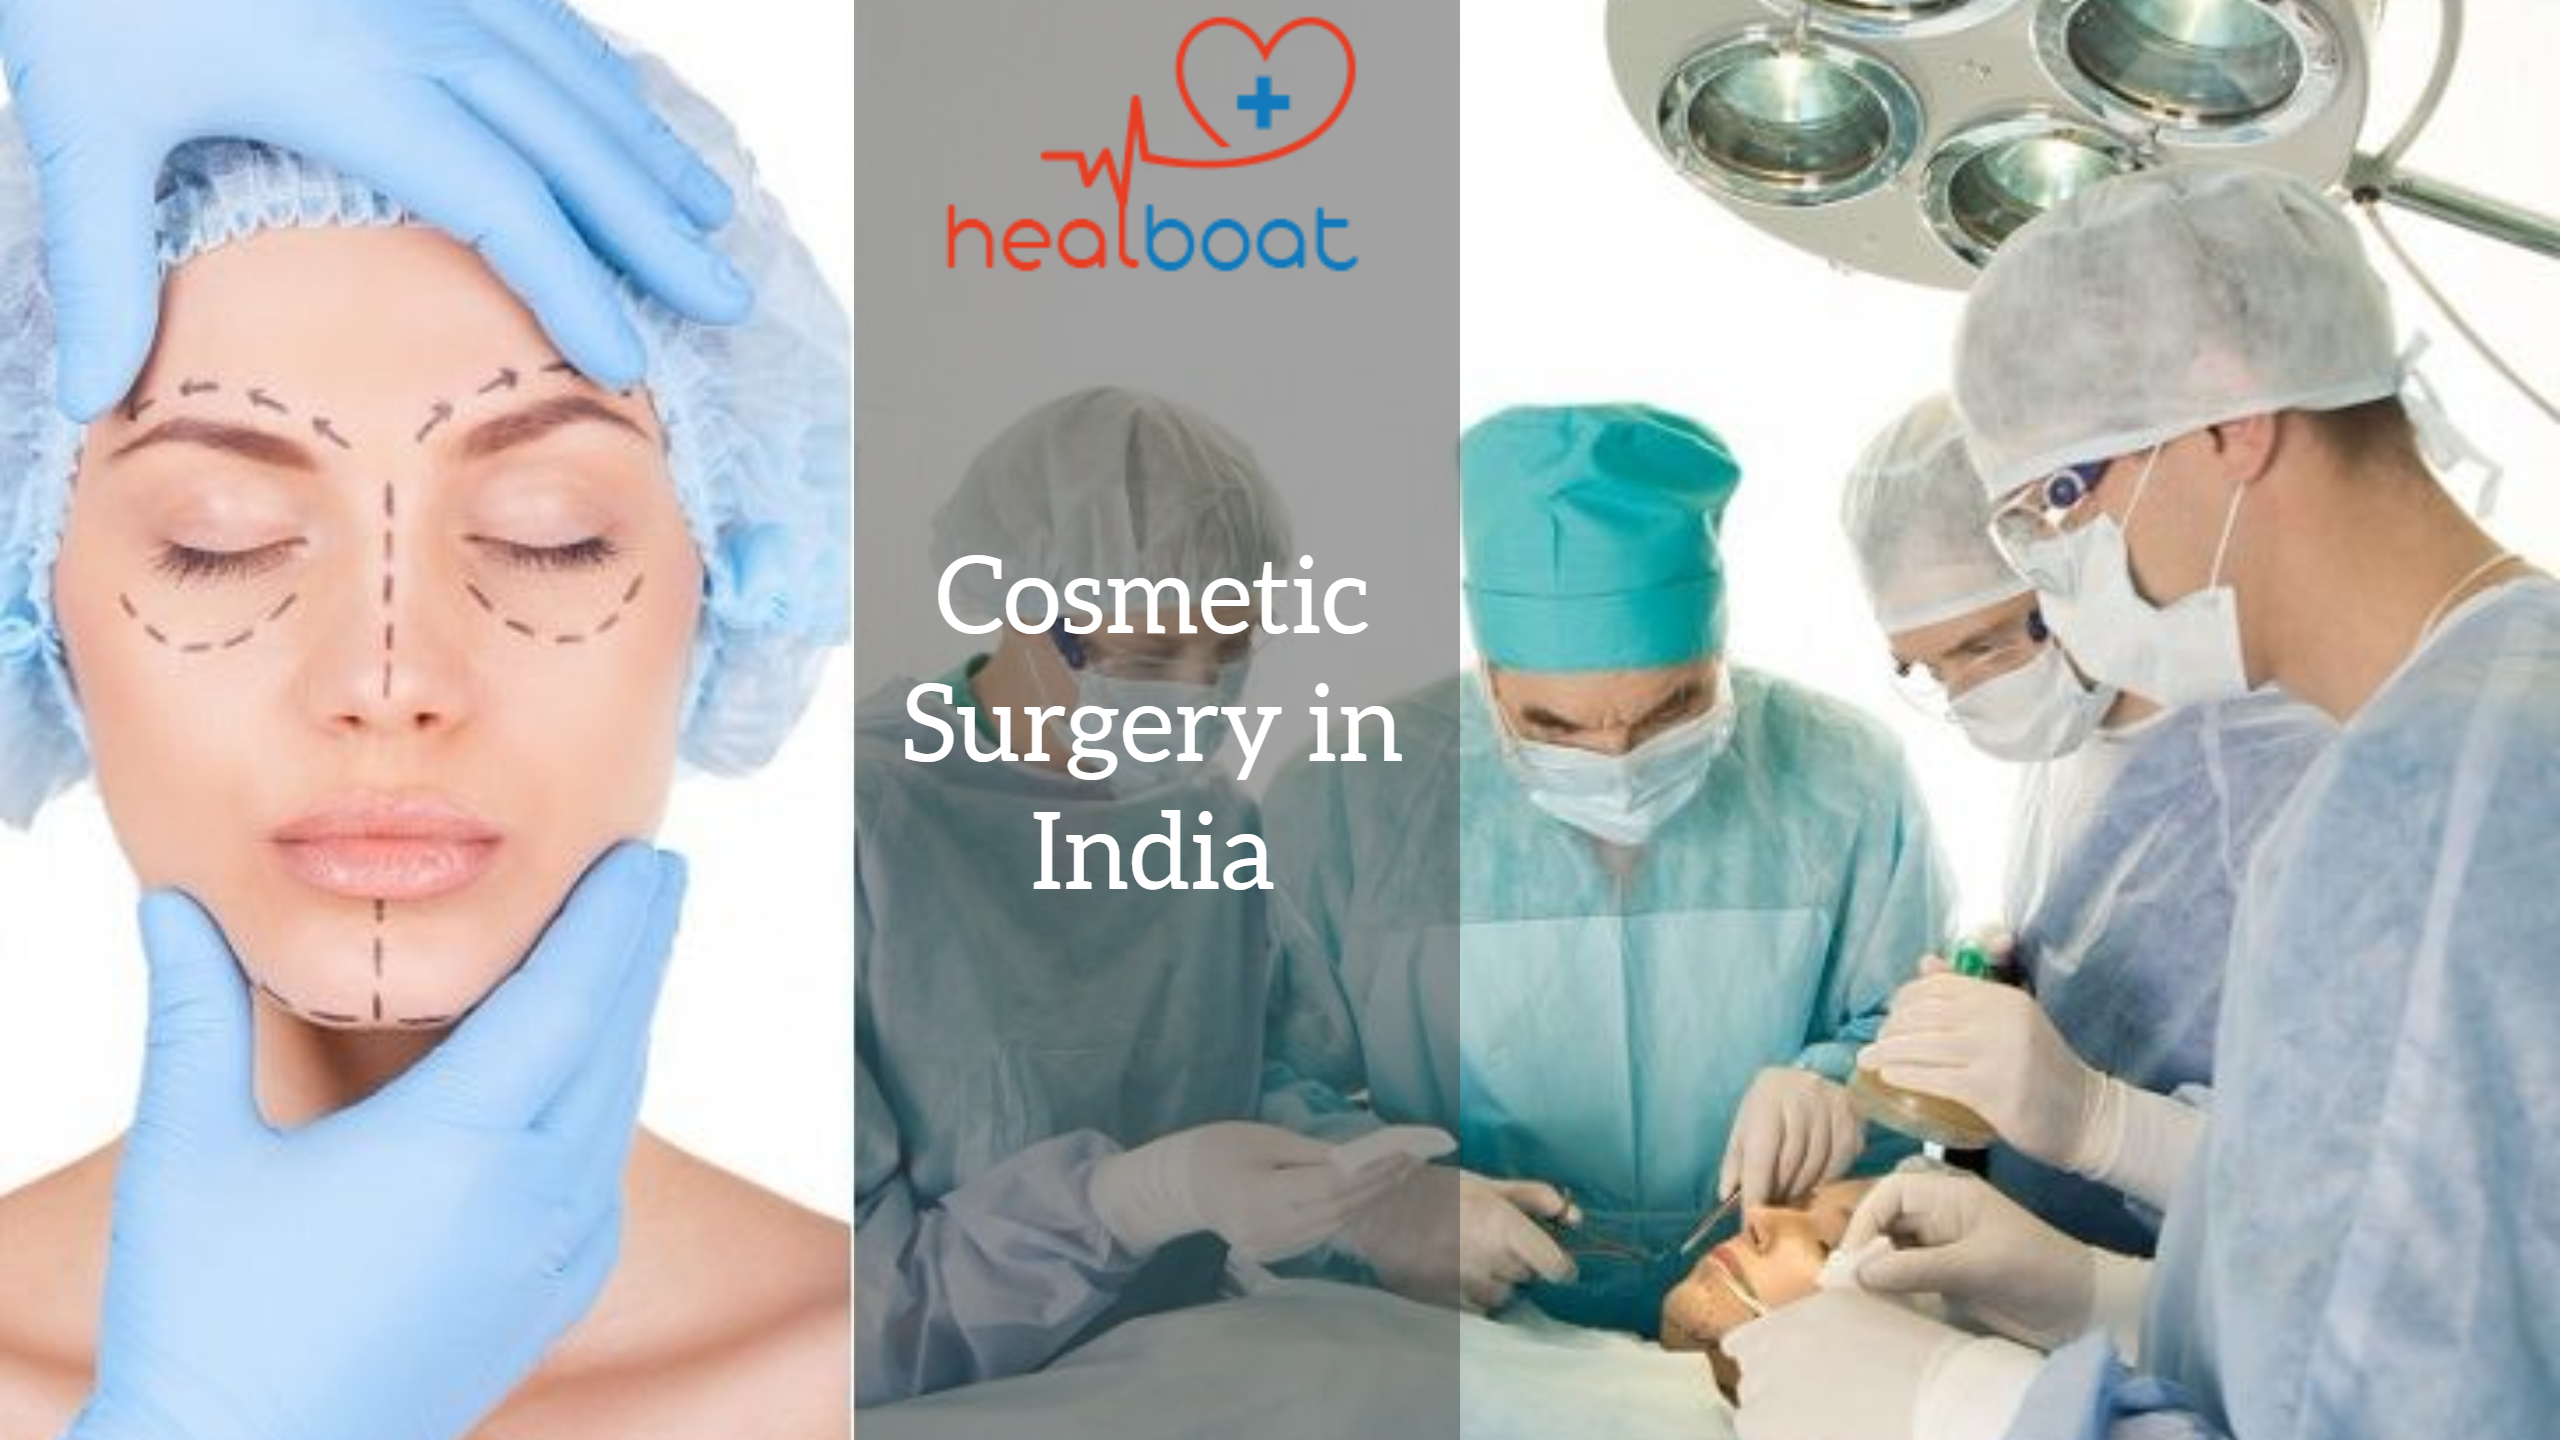 a discussion on moral issues of cosmetic surgery Promotional cosmetic surgery marketing material too typically points to the positive psychological effects of successful surgery on the recipient, and suggests within this context, somatic subjectivity obtained through engagement with surgery is seen as an expression of moral self, rather than.